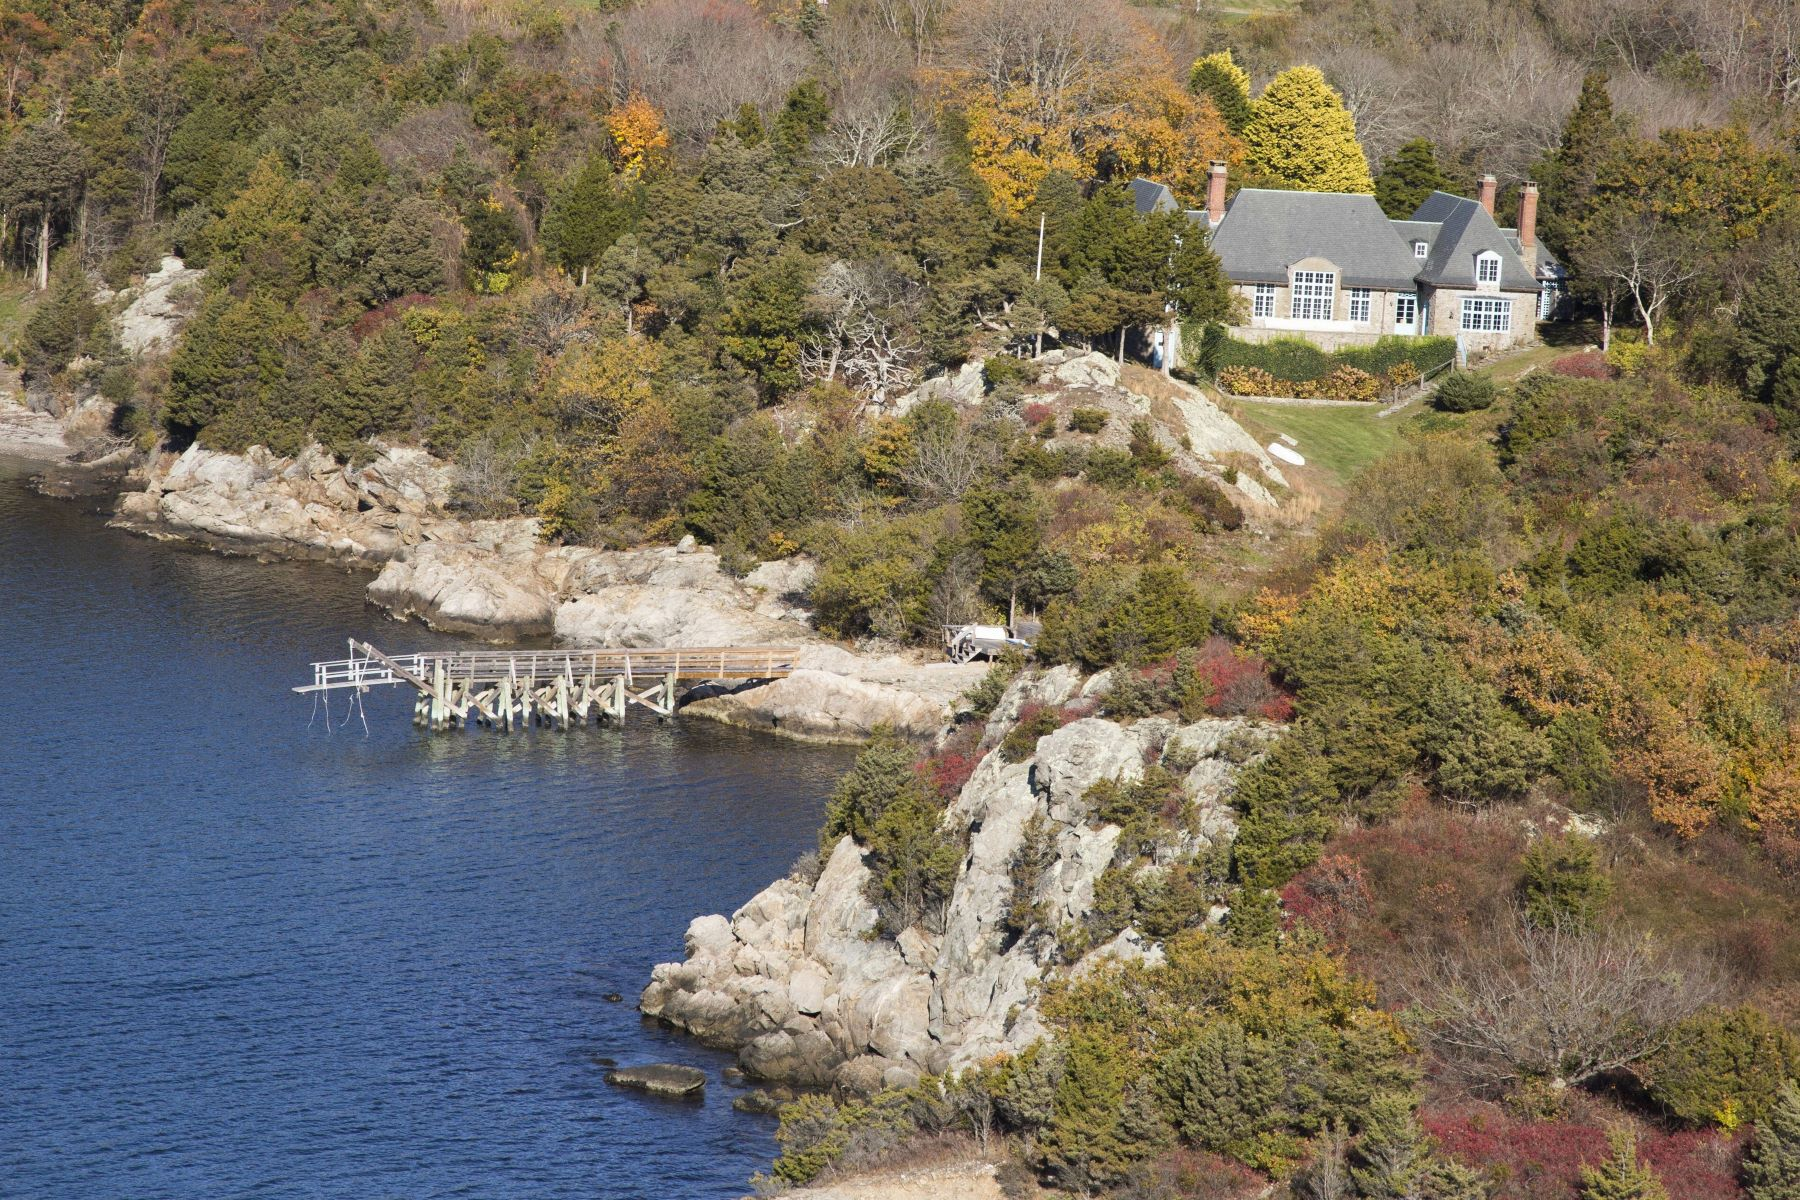 Single Family Home for Sale at Historic Stone Cottage 216 Highland Drive Jamestown, Rhode Island 02835 United States